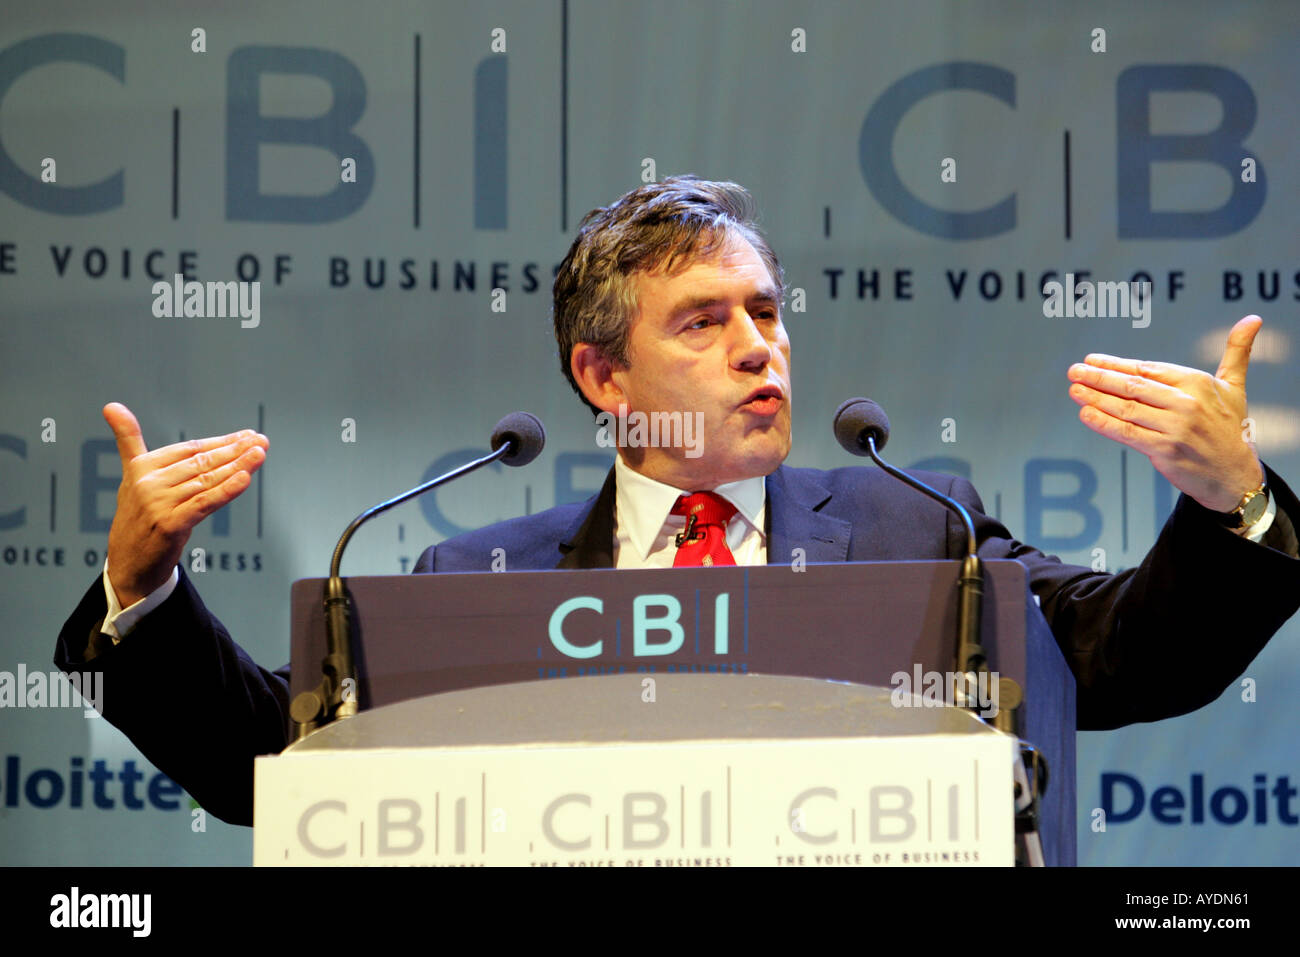 Gordon Brown speaking at the CBI conference in London. - Stock Image